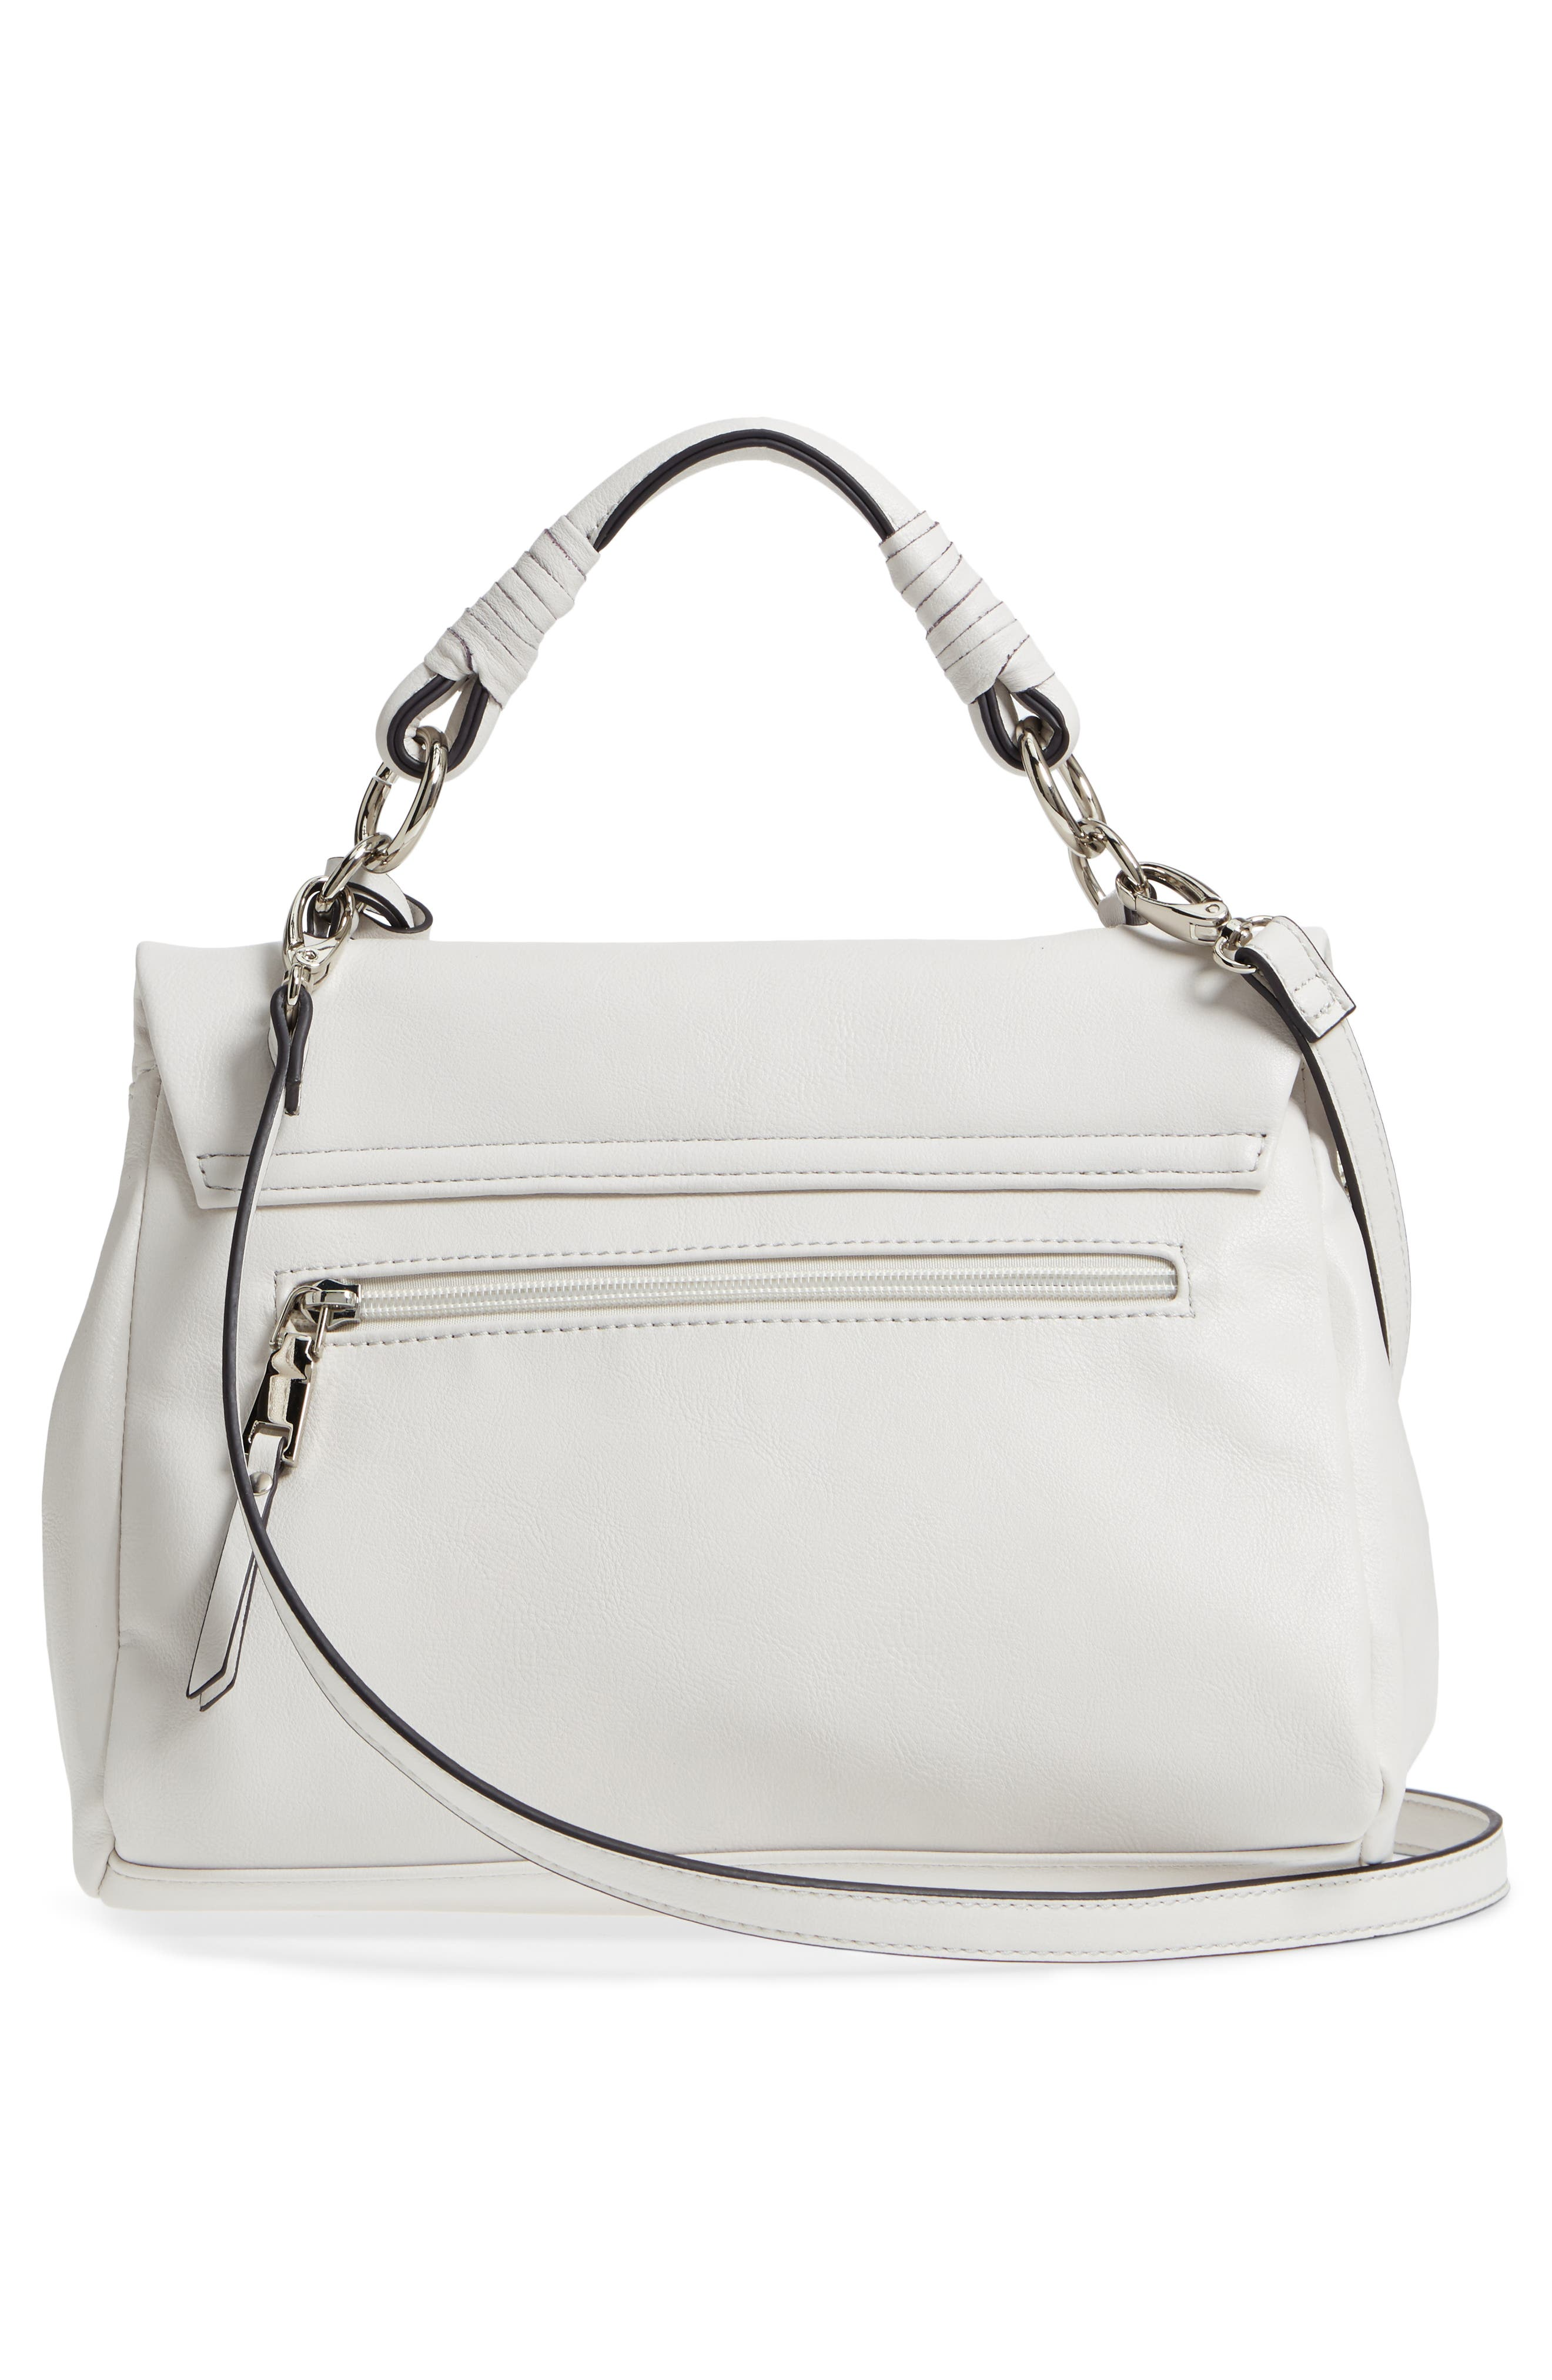 Top Handle Faux Leather Crossbody Bag,                             Alternate thumbnail 3, color,                             Linen White